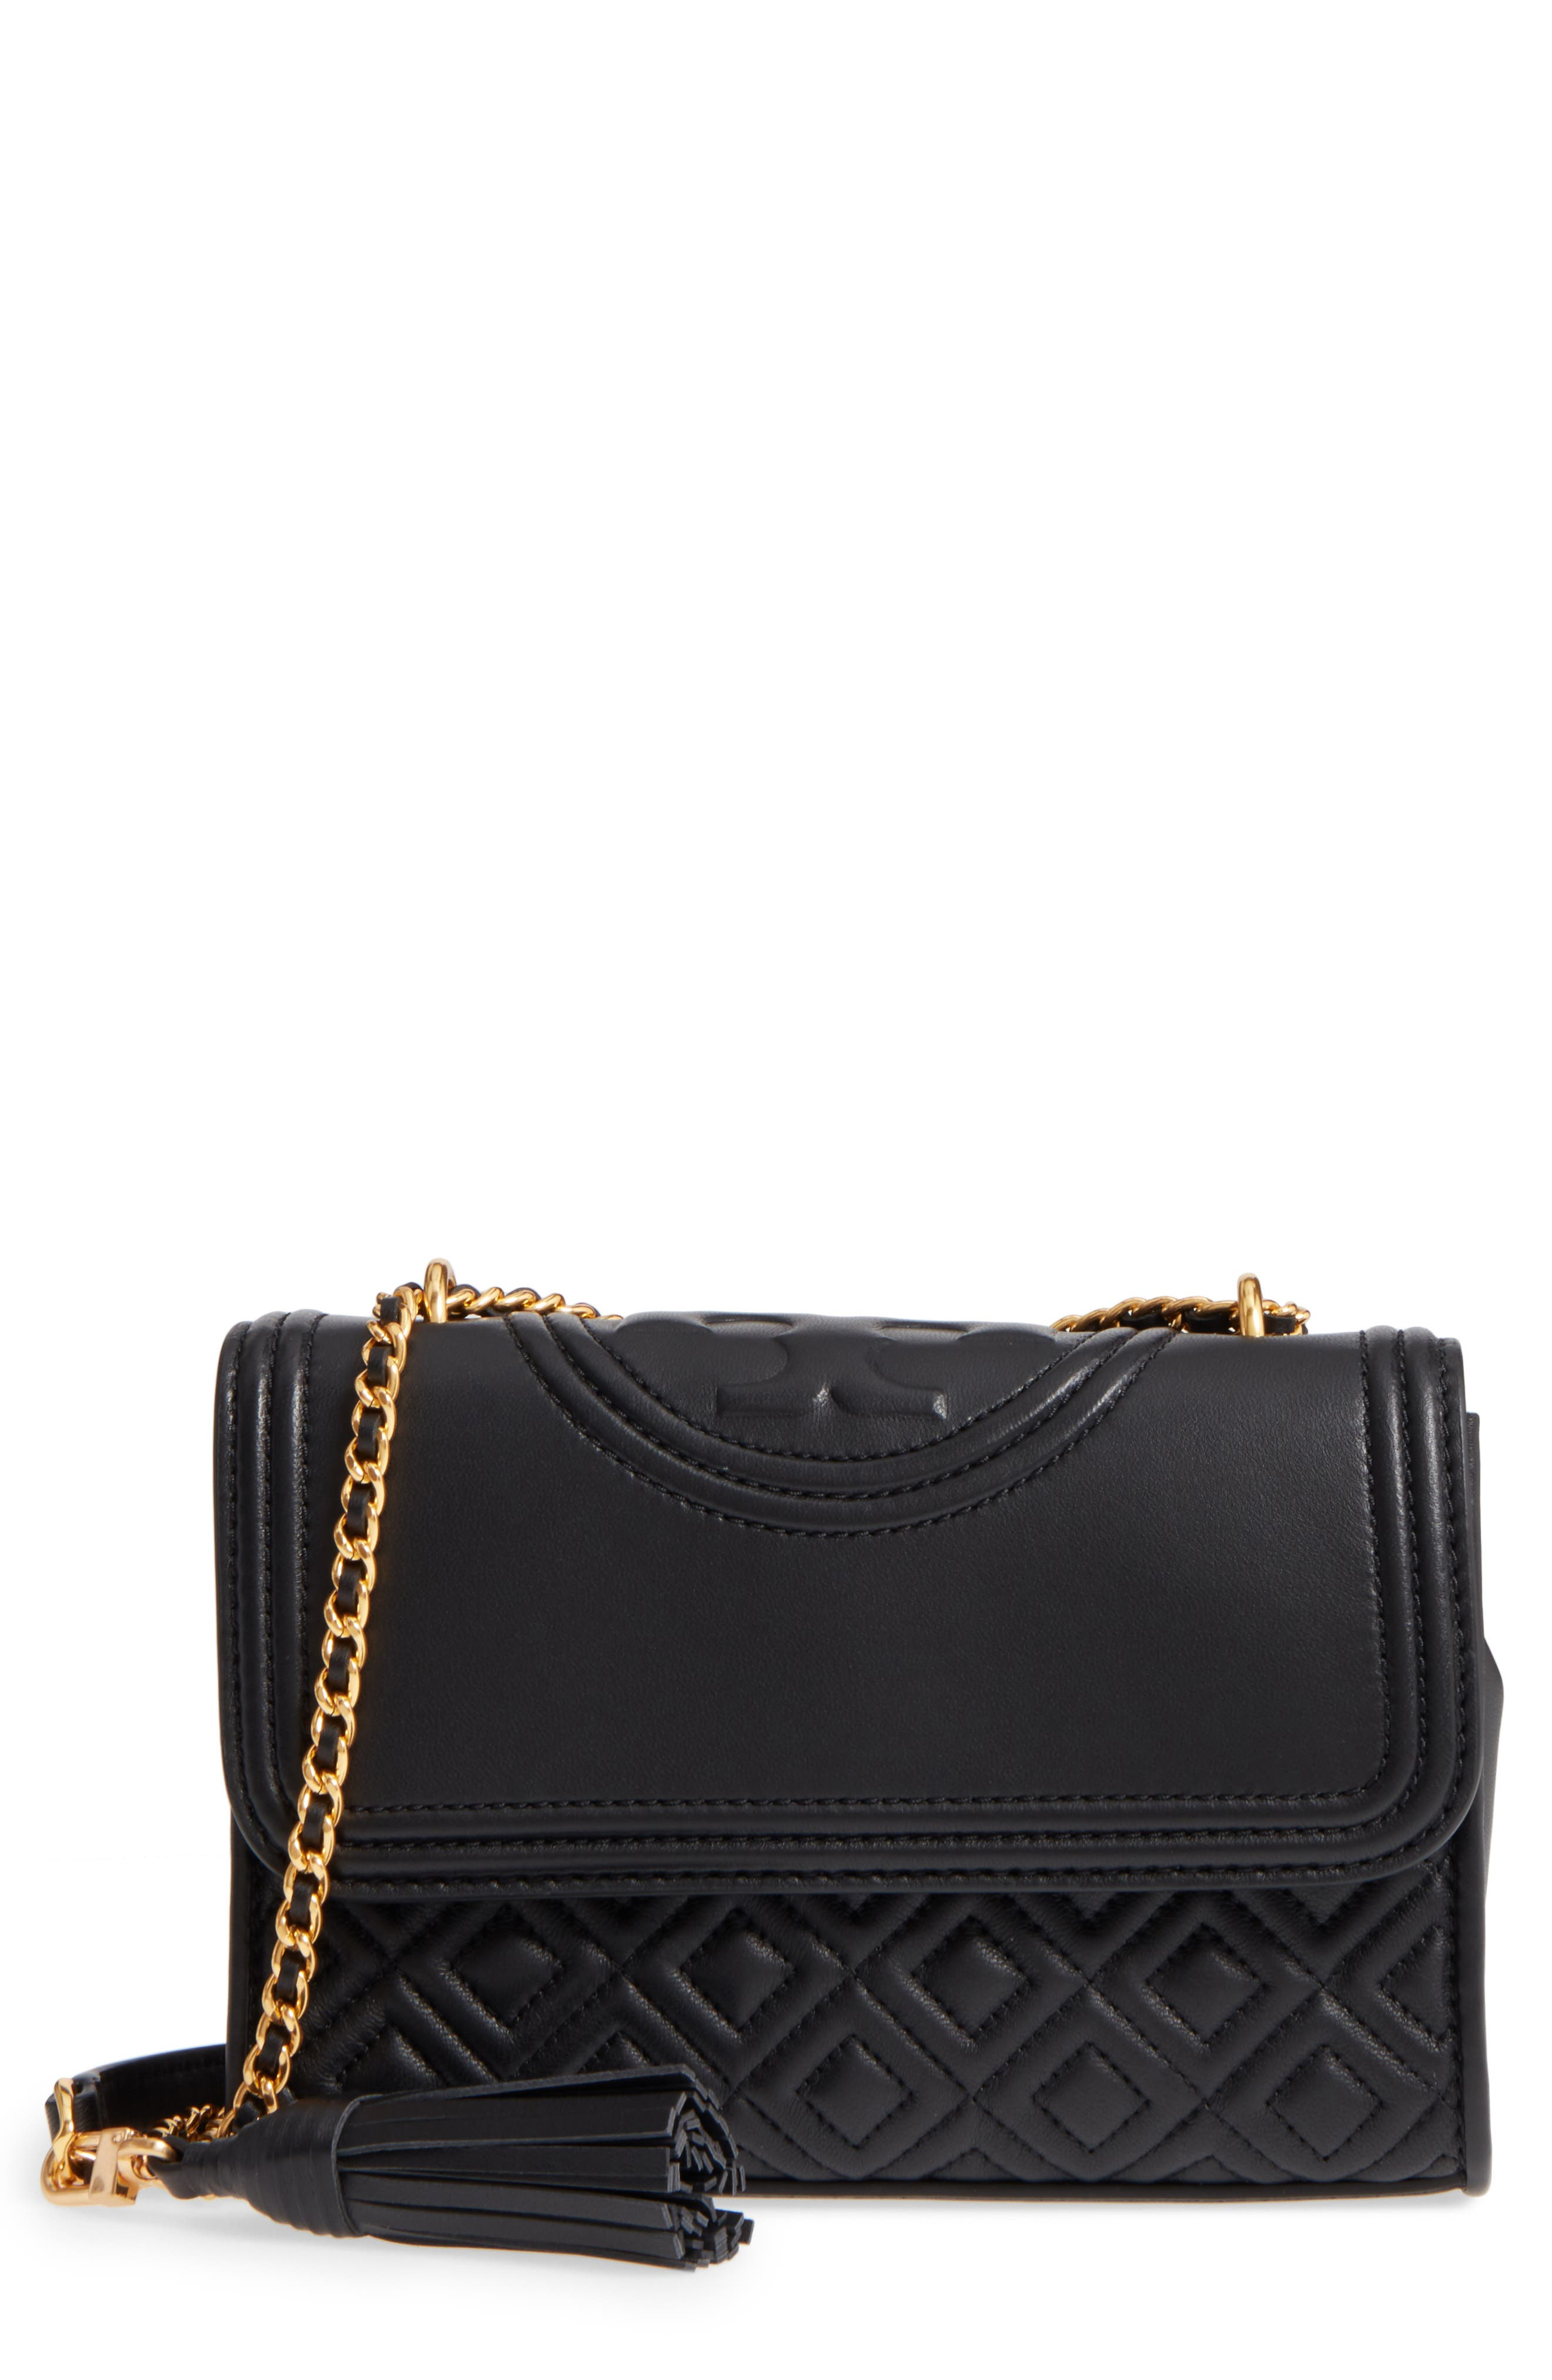 TORY BURCH Small Fleming Leather Convertible Shoulder Bag, Main, color, BLACK